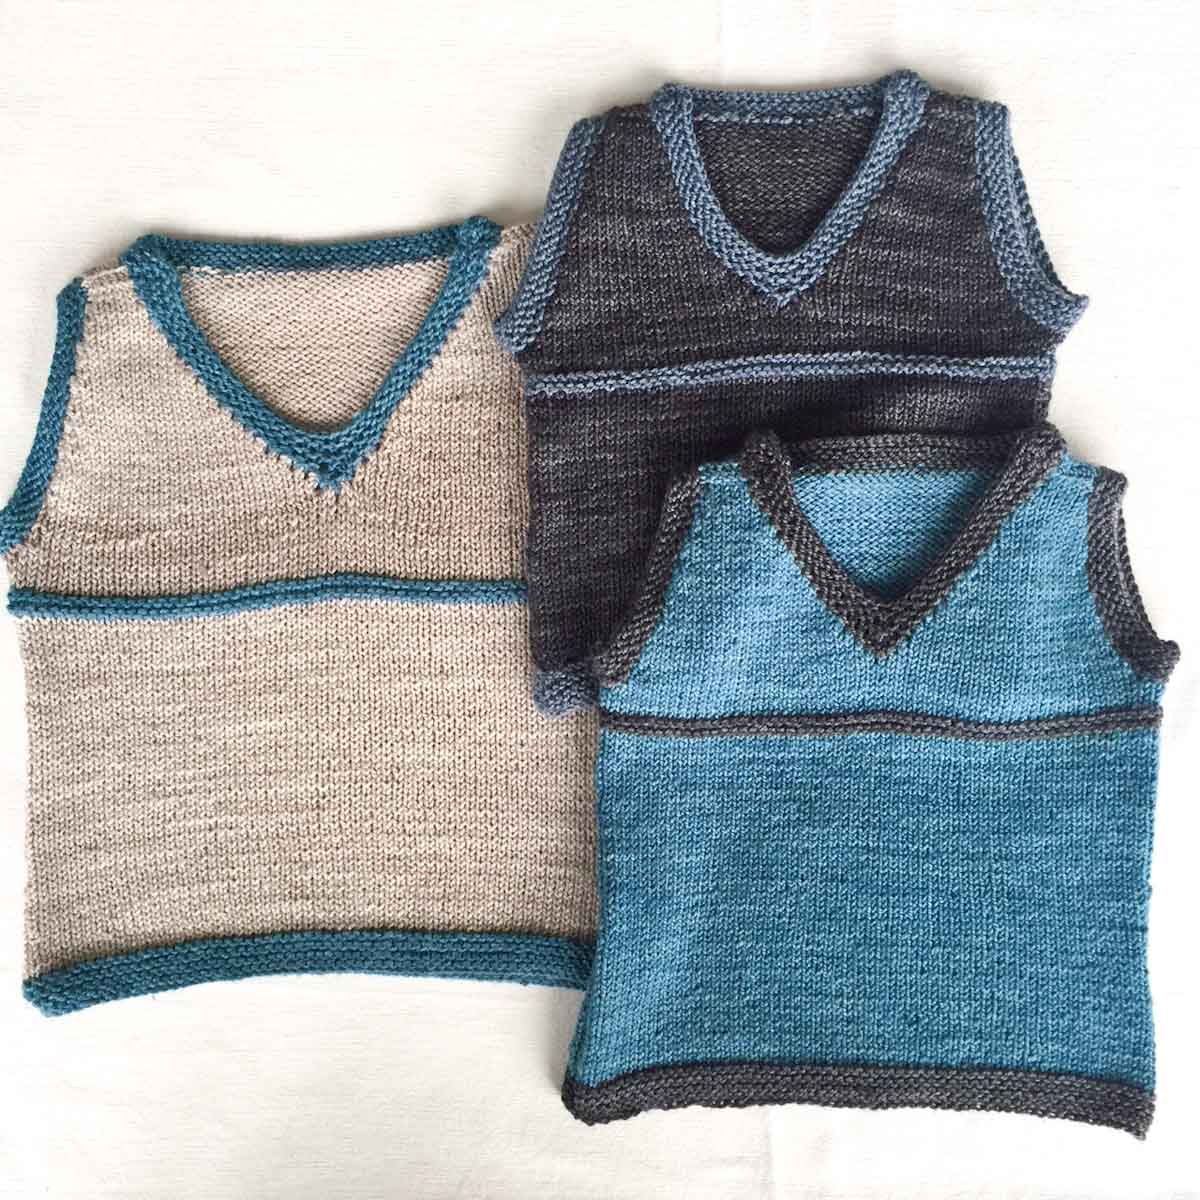 Cowgirlblues free knit pattern cute sleeveless vest boys